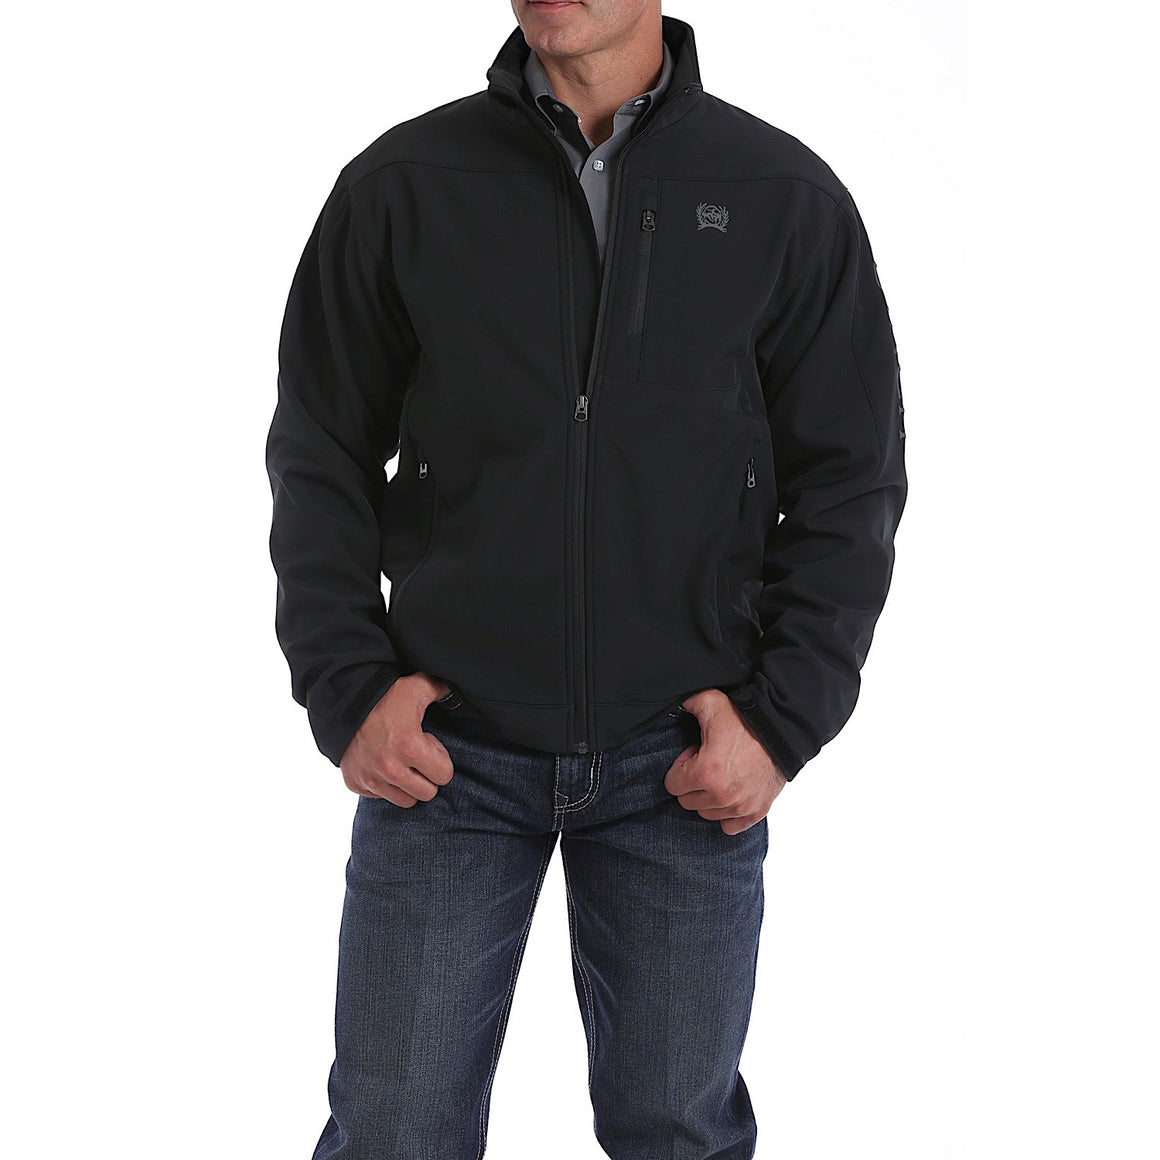 Cinch Mens Bonded Jacket Black/Silver